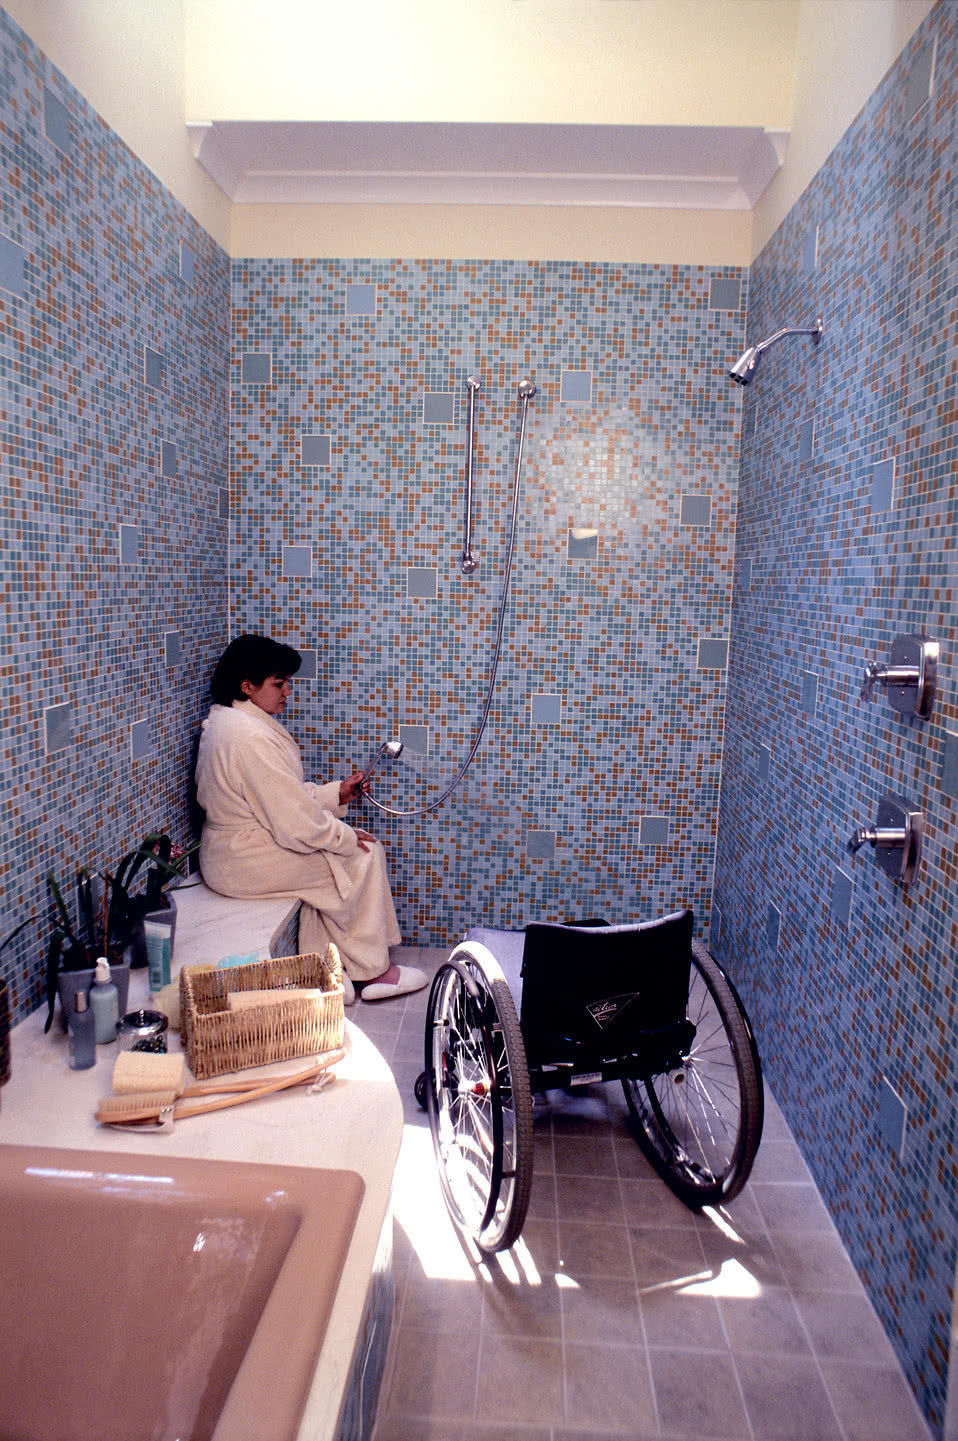 senior woman sitting on specifically designed wet area shower bench